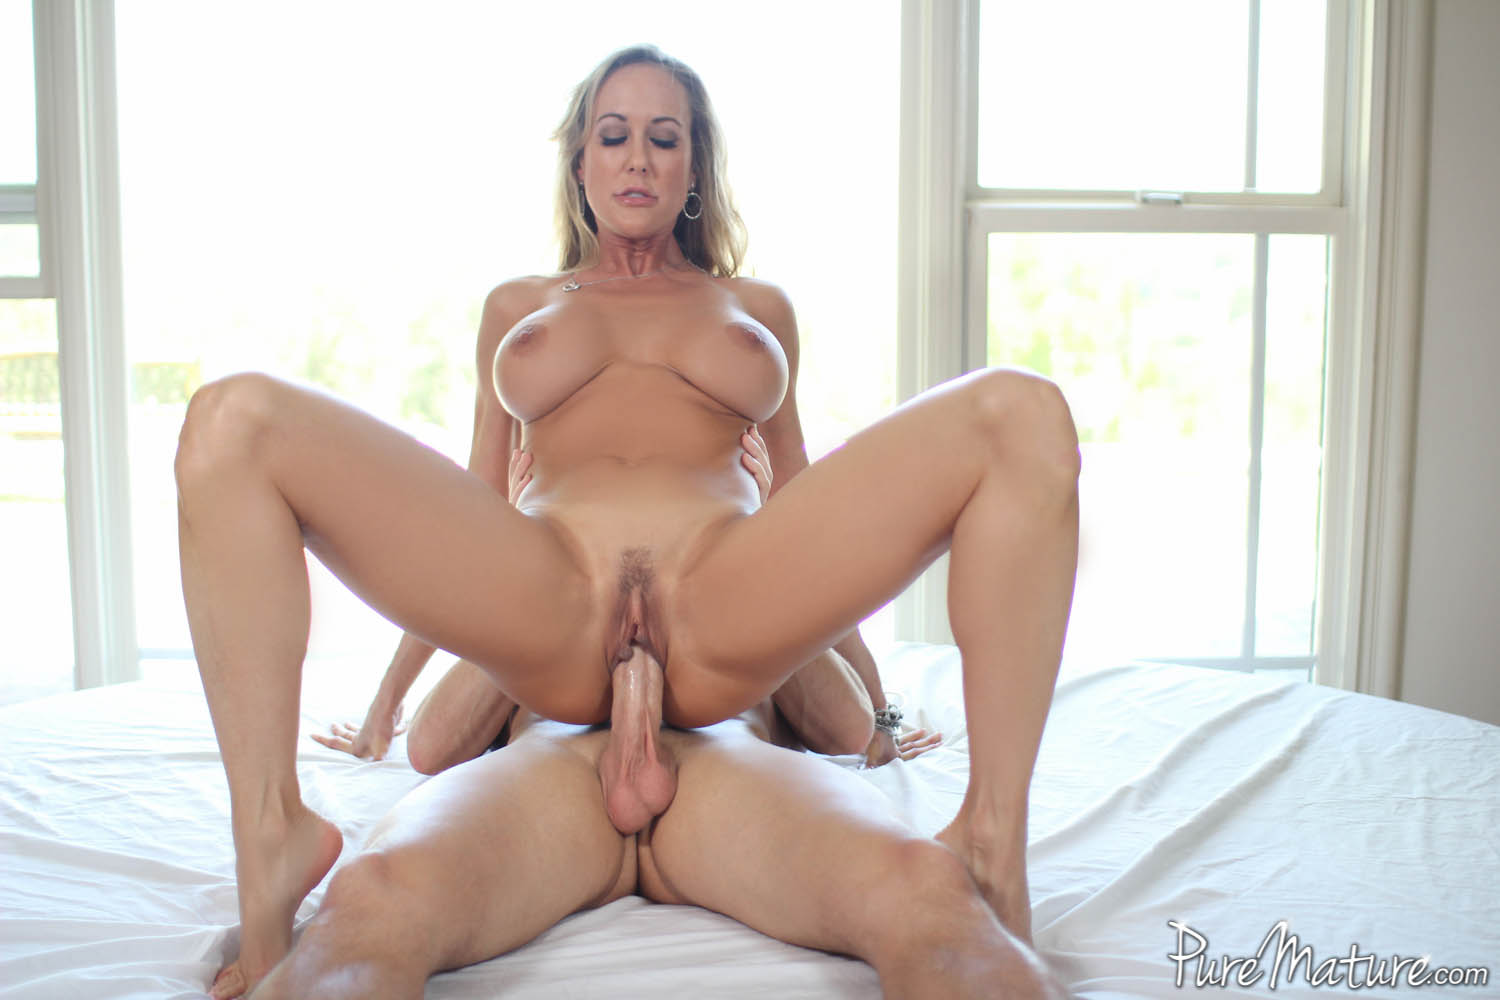 Turn busty milf fucked interracial video wird